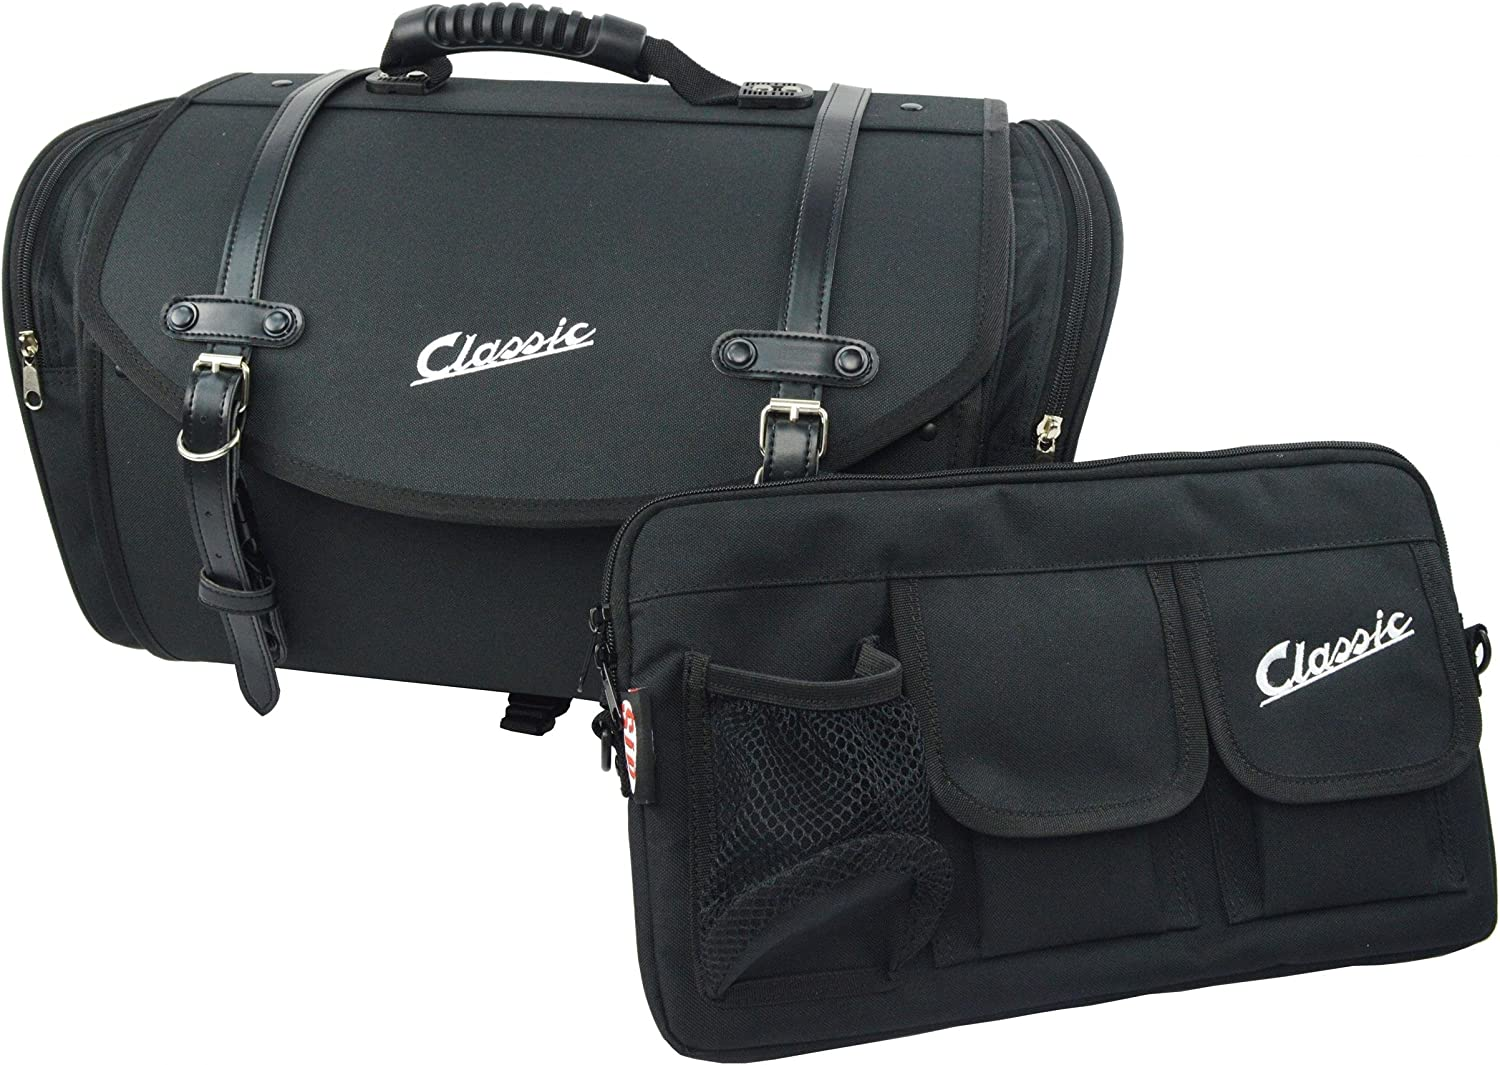 SIP Pockets Set Classic Nylon with Bag for Luggage Compartment and Bag//Case Large for Carrier Black